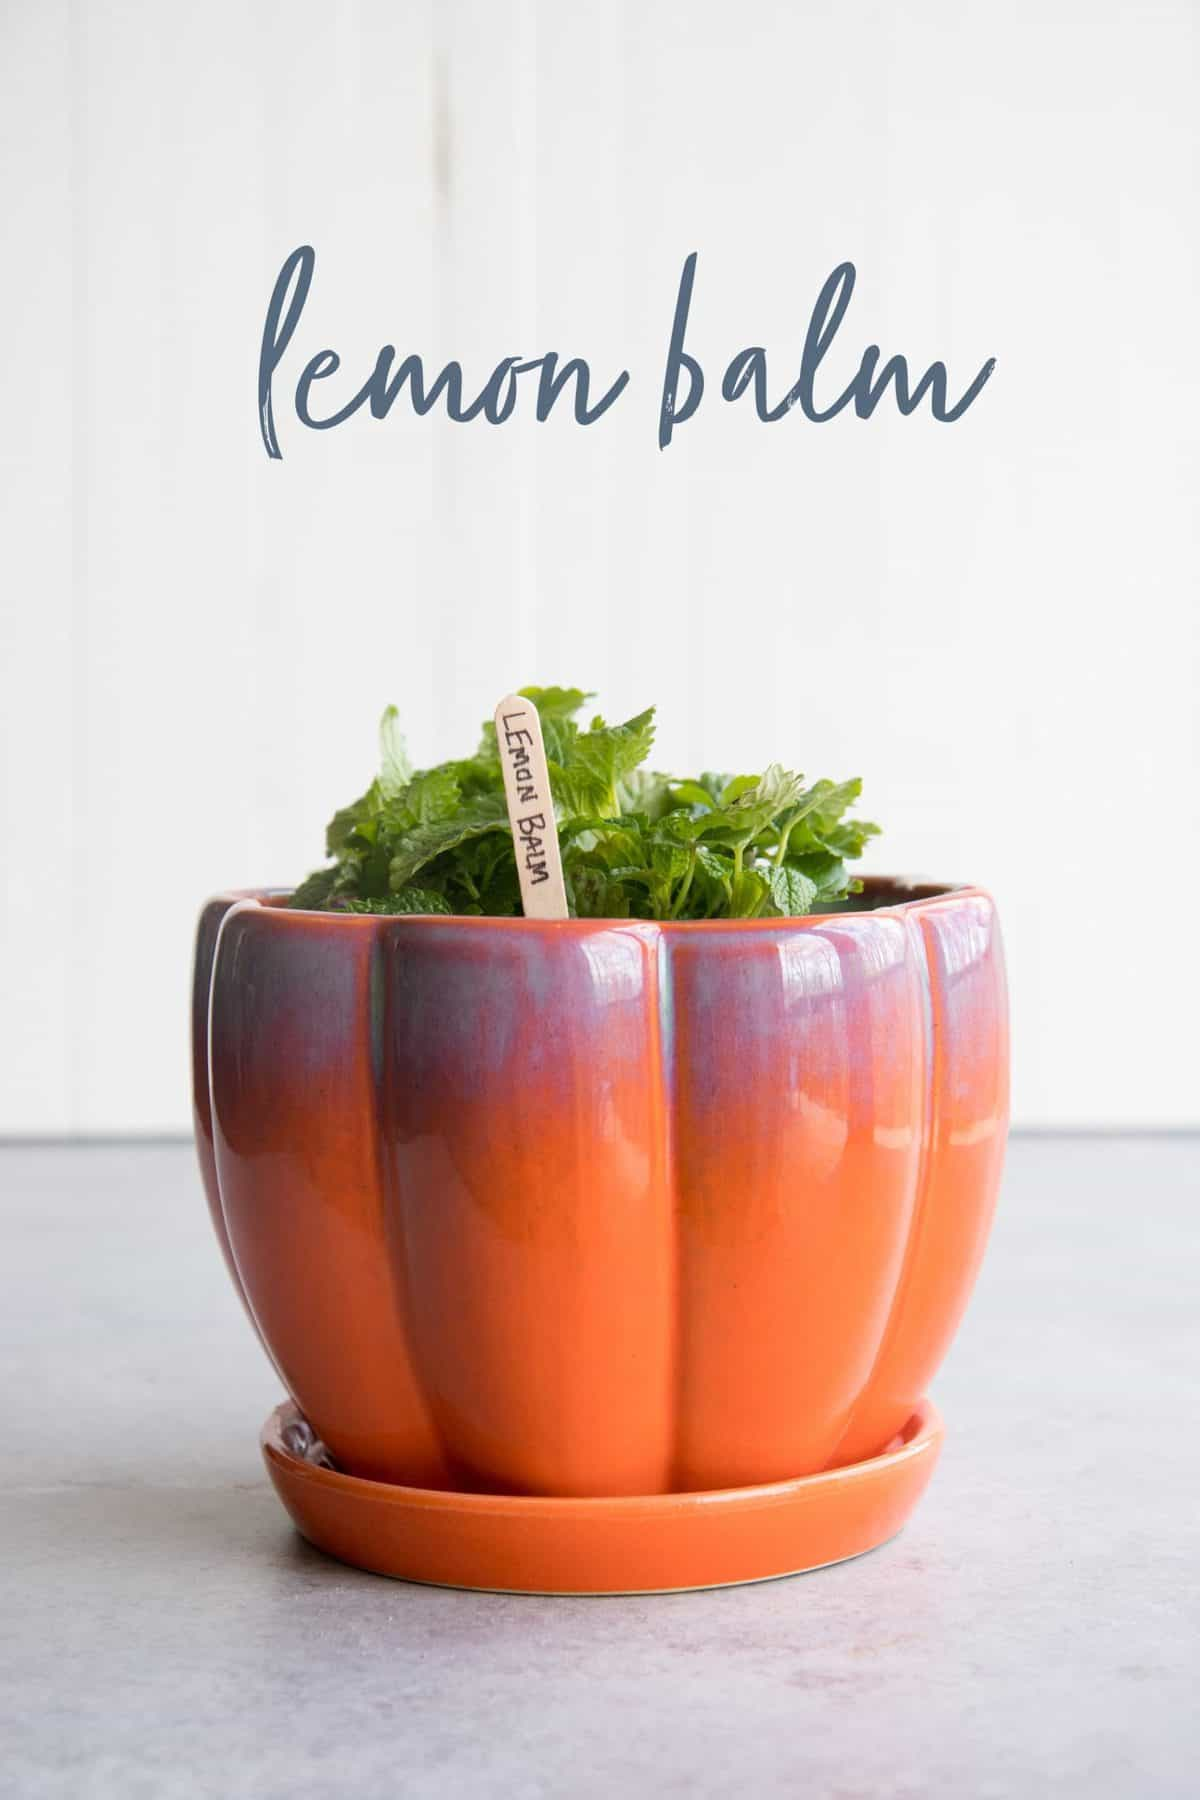 Lemon balm in a red-orange flowerpot, with a text overlay